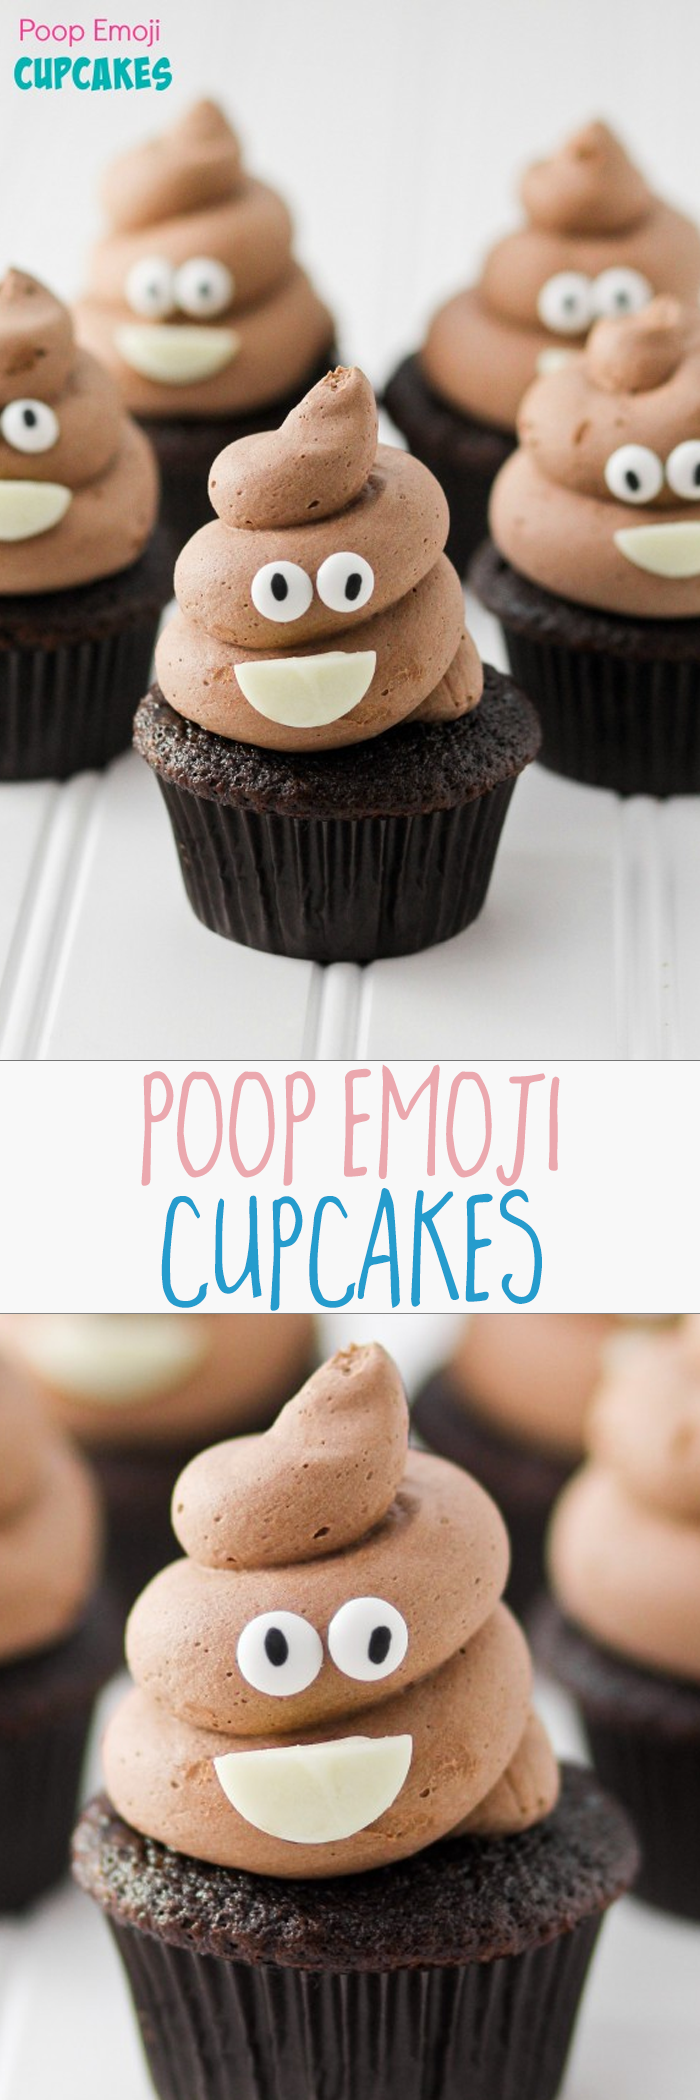 POOP EMOJI CUPCAKES pin to make these for the kids They are